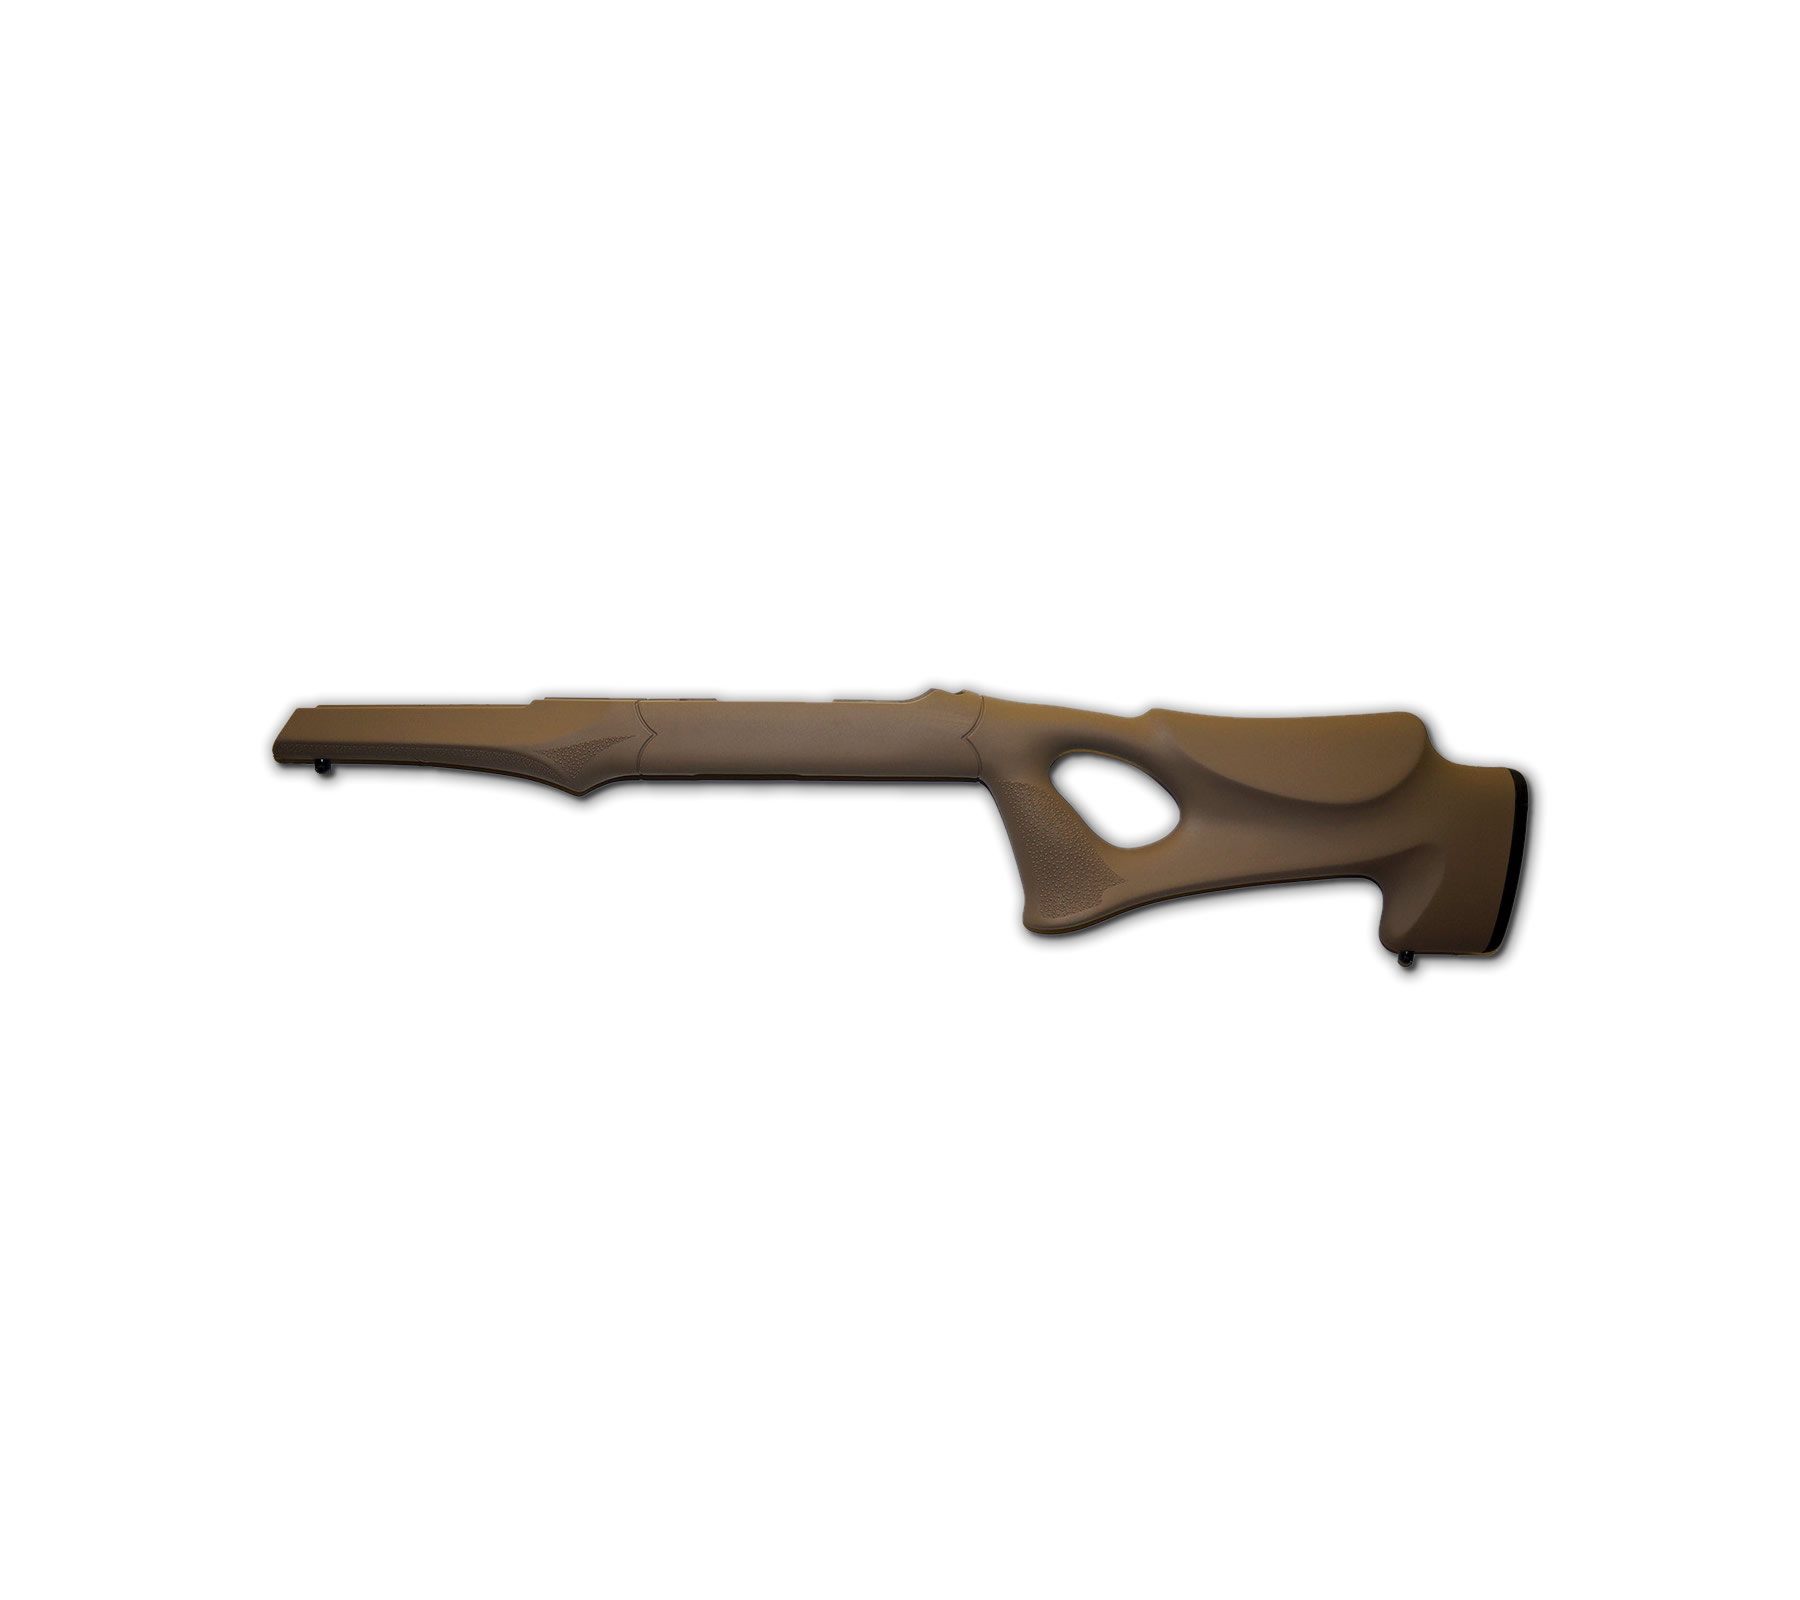 Hogue 10-22 Tactical Thumbhole Stock .920 Barrel Channel Earth Tan OverMolded Rubber